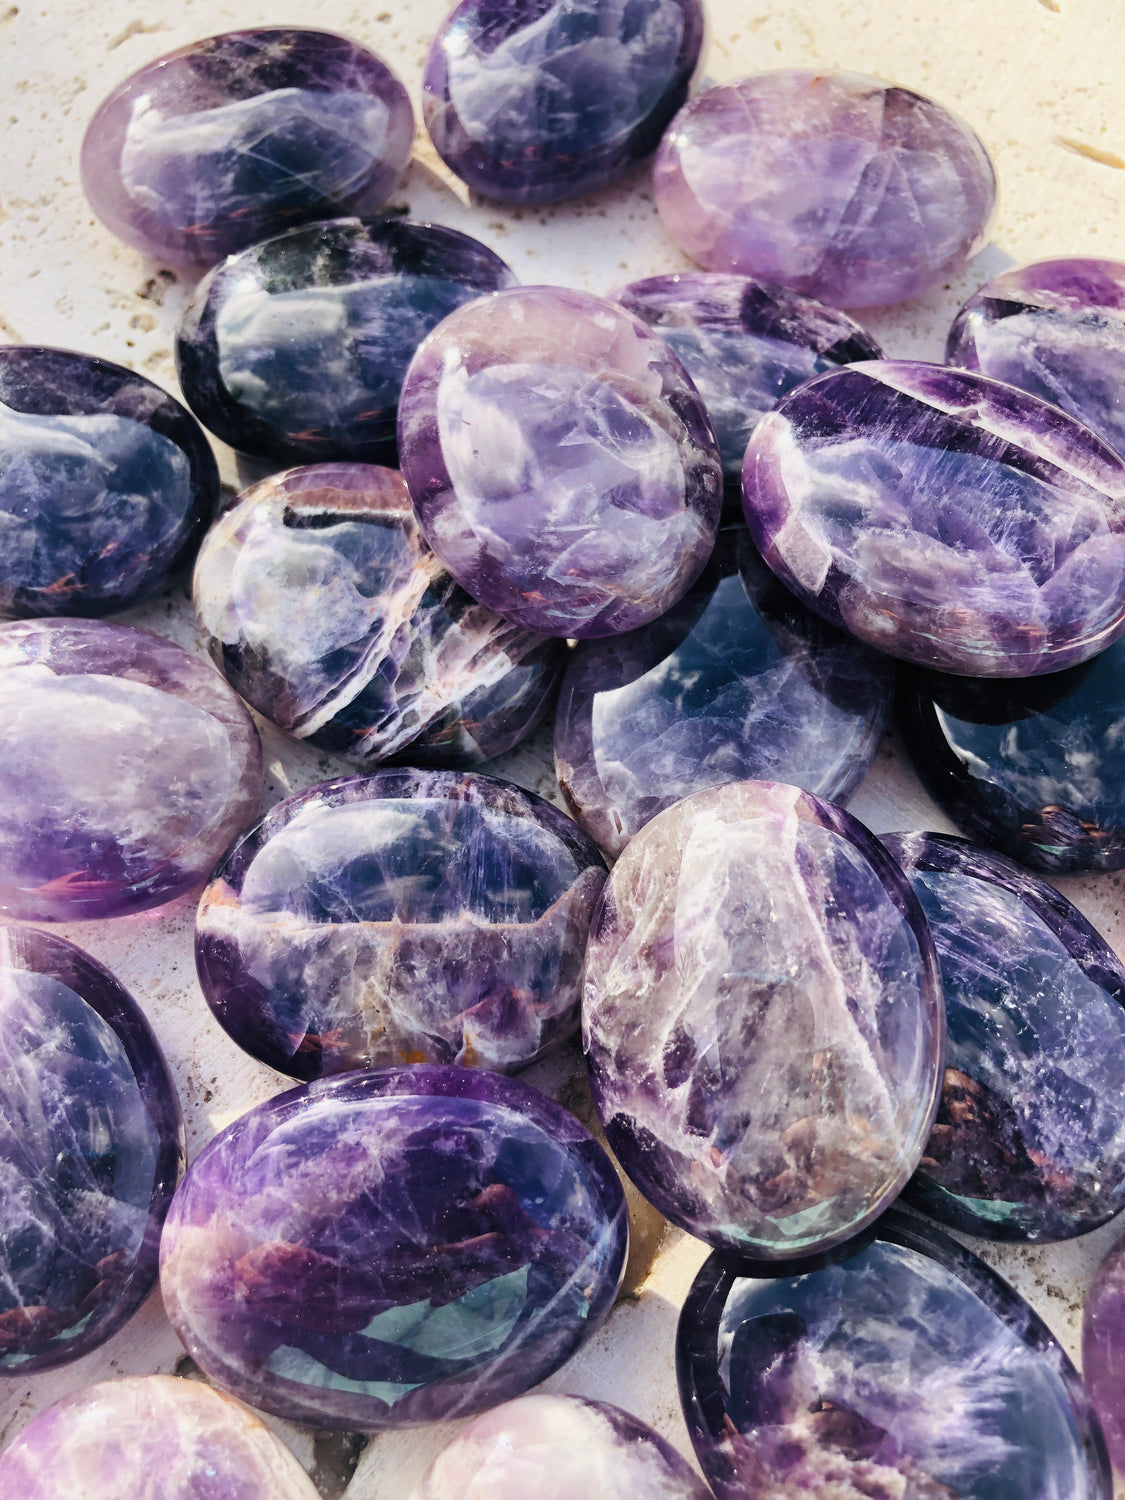 Chevron Amethyst Pillows from Brazil